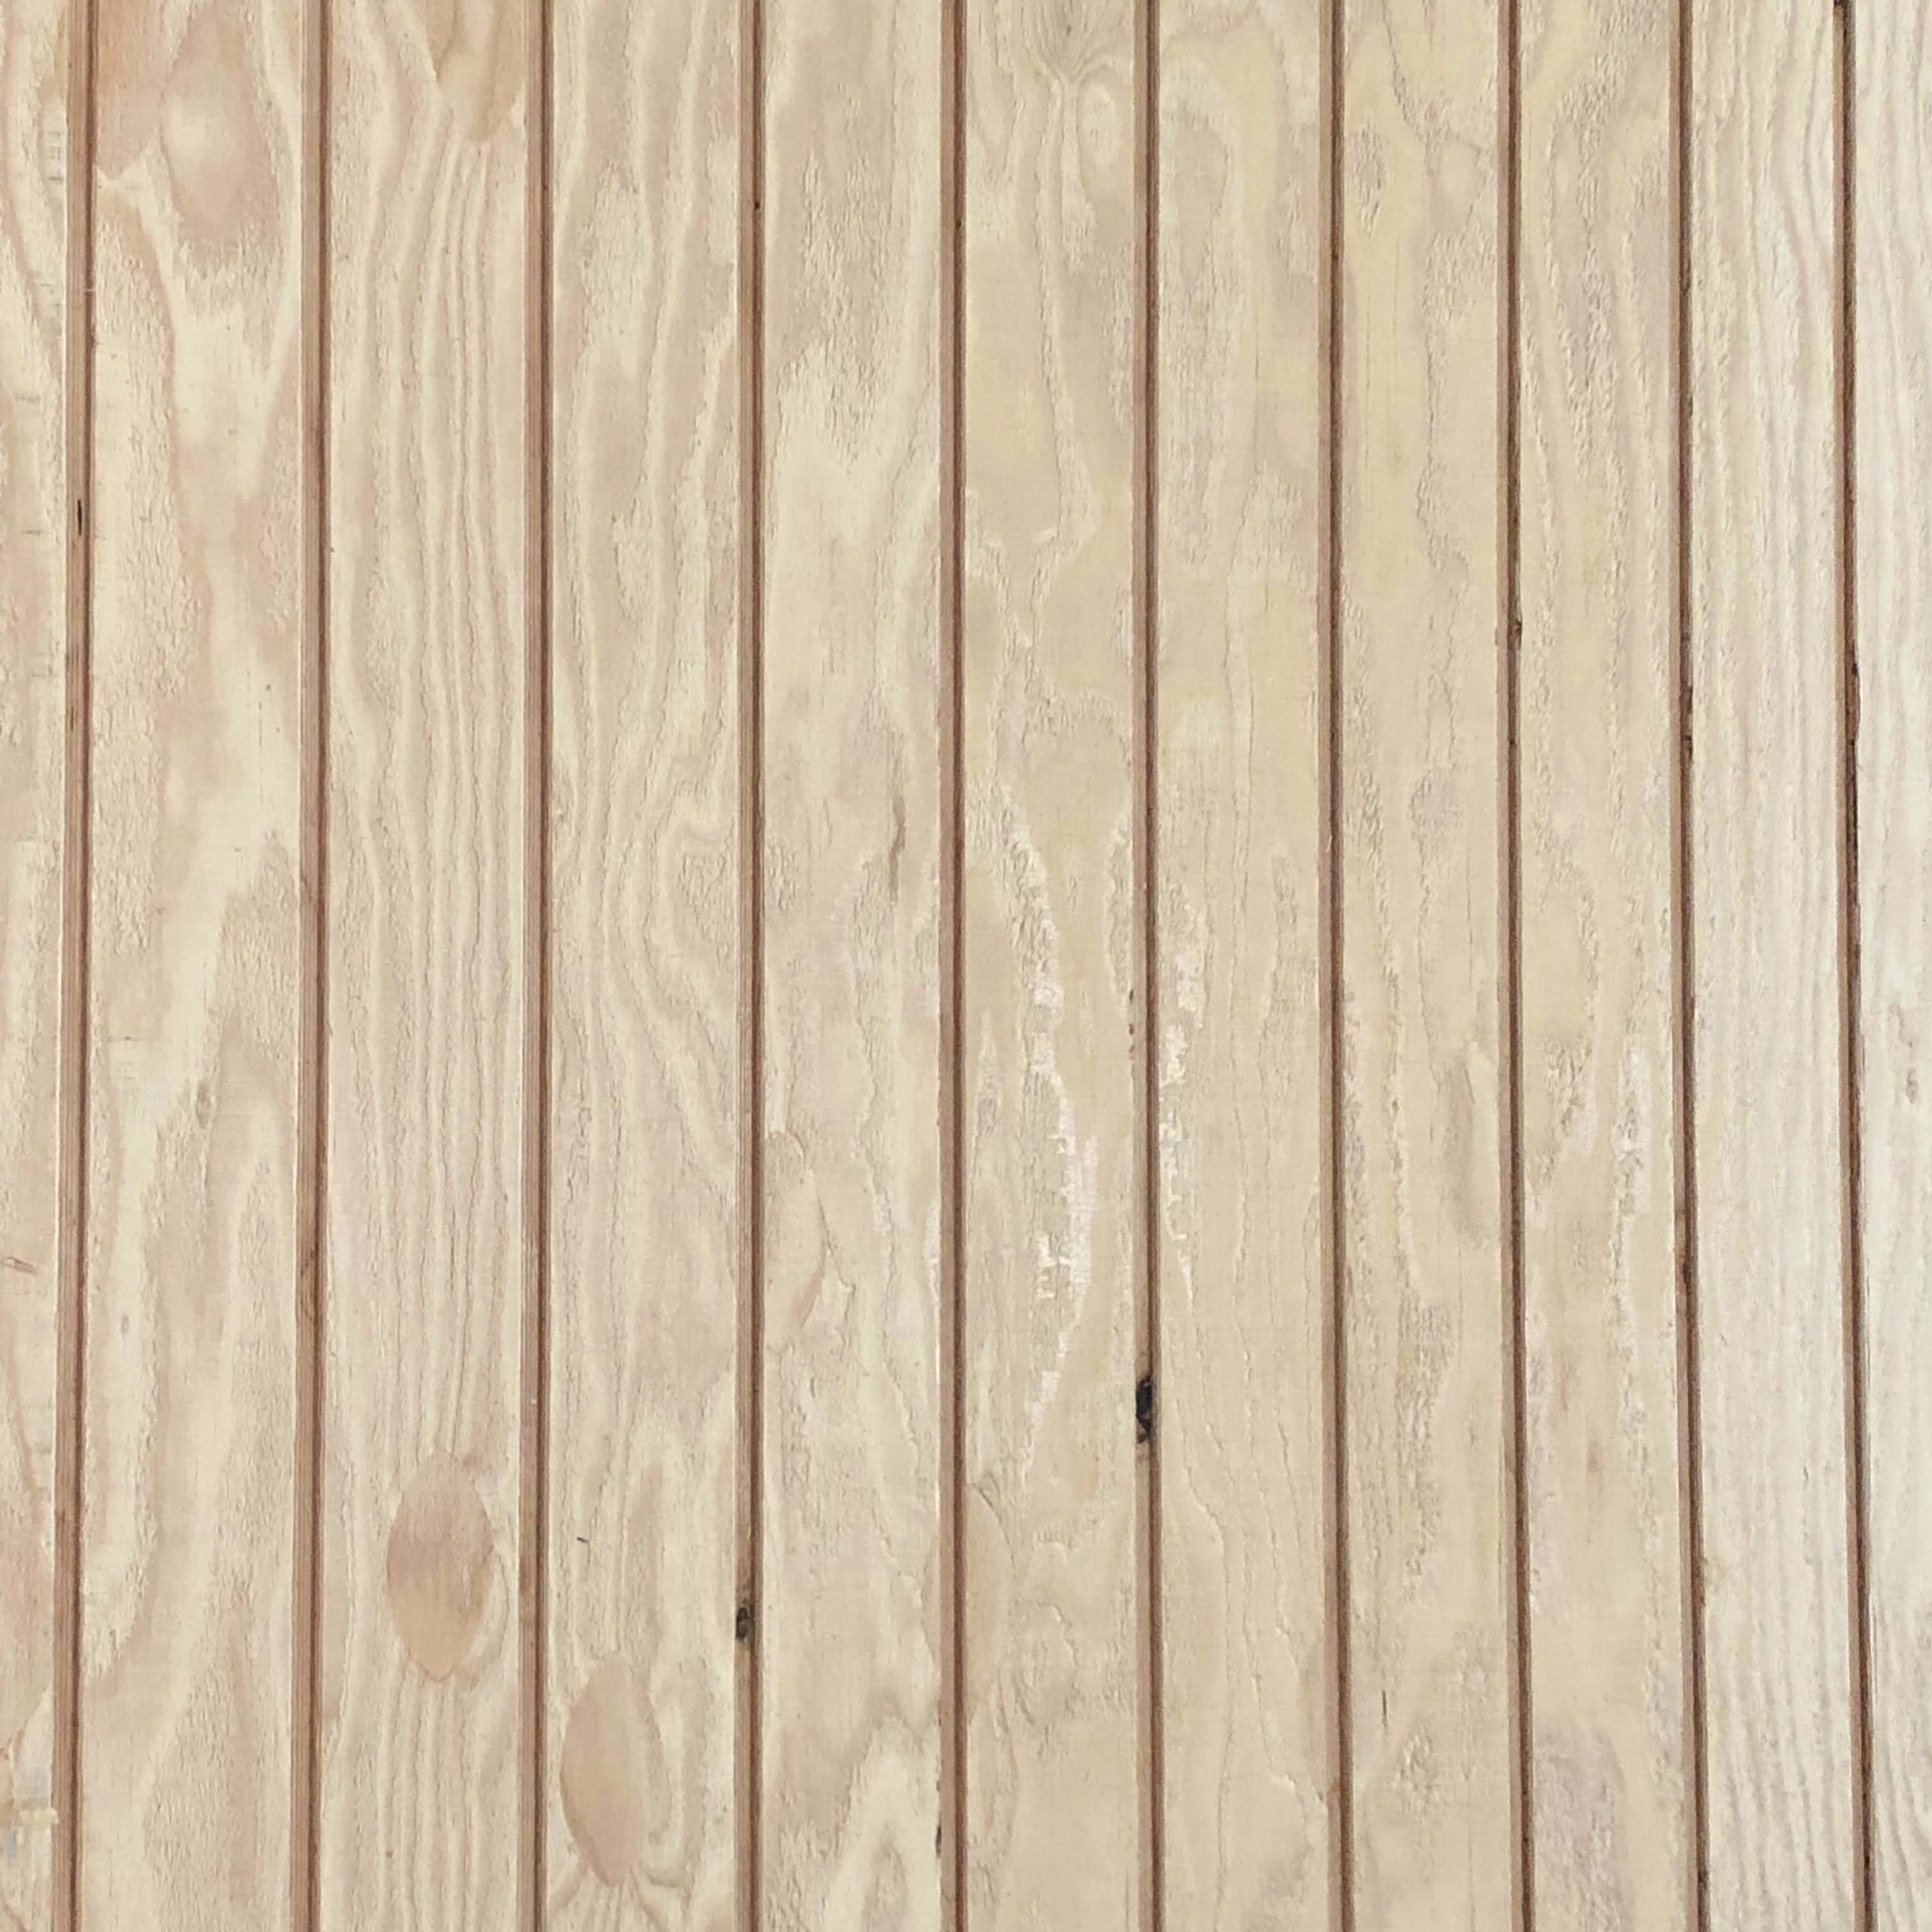 T1 11 Exterior Siding Panel With 4 Oc Capitol City Lumber